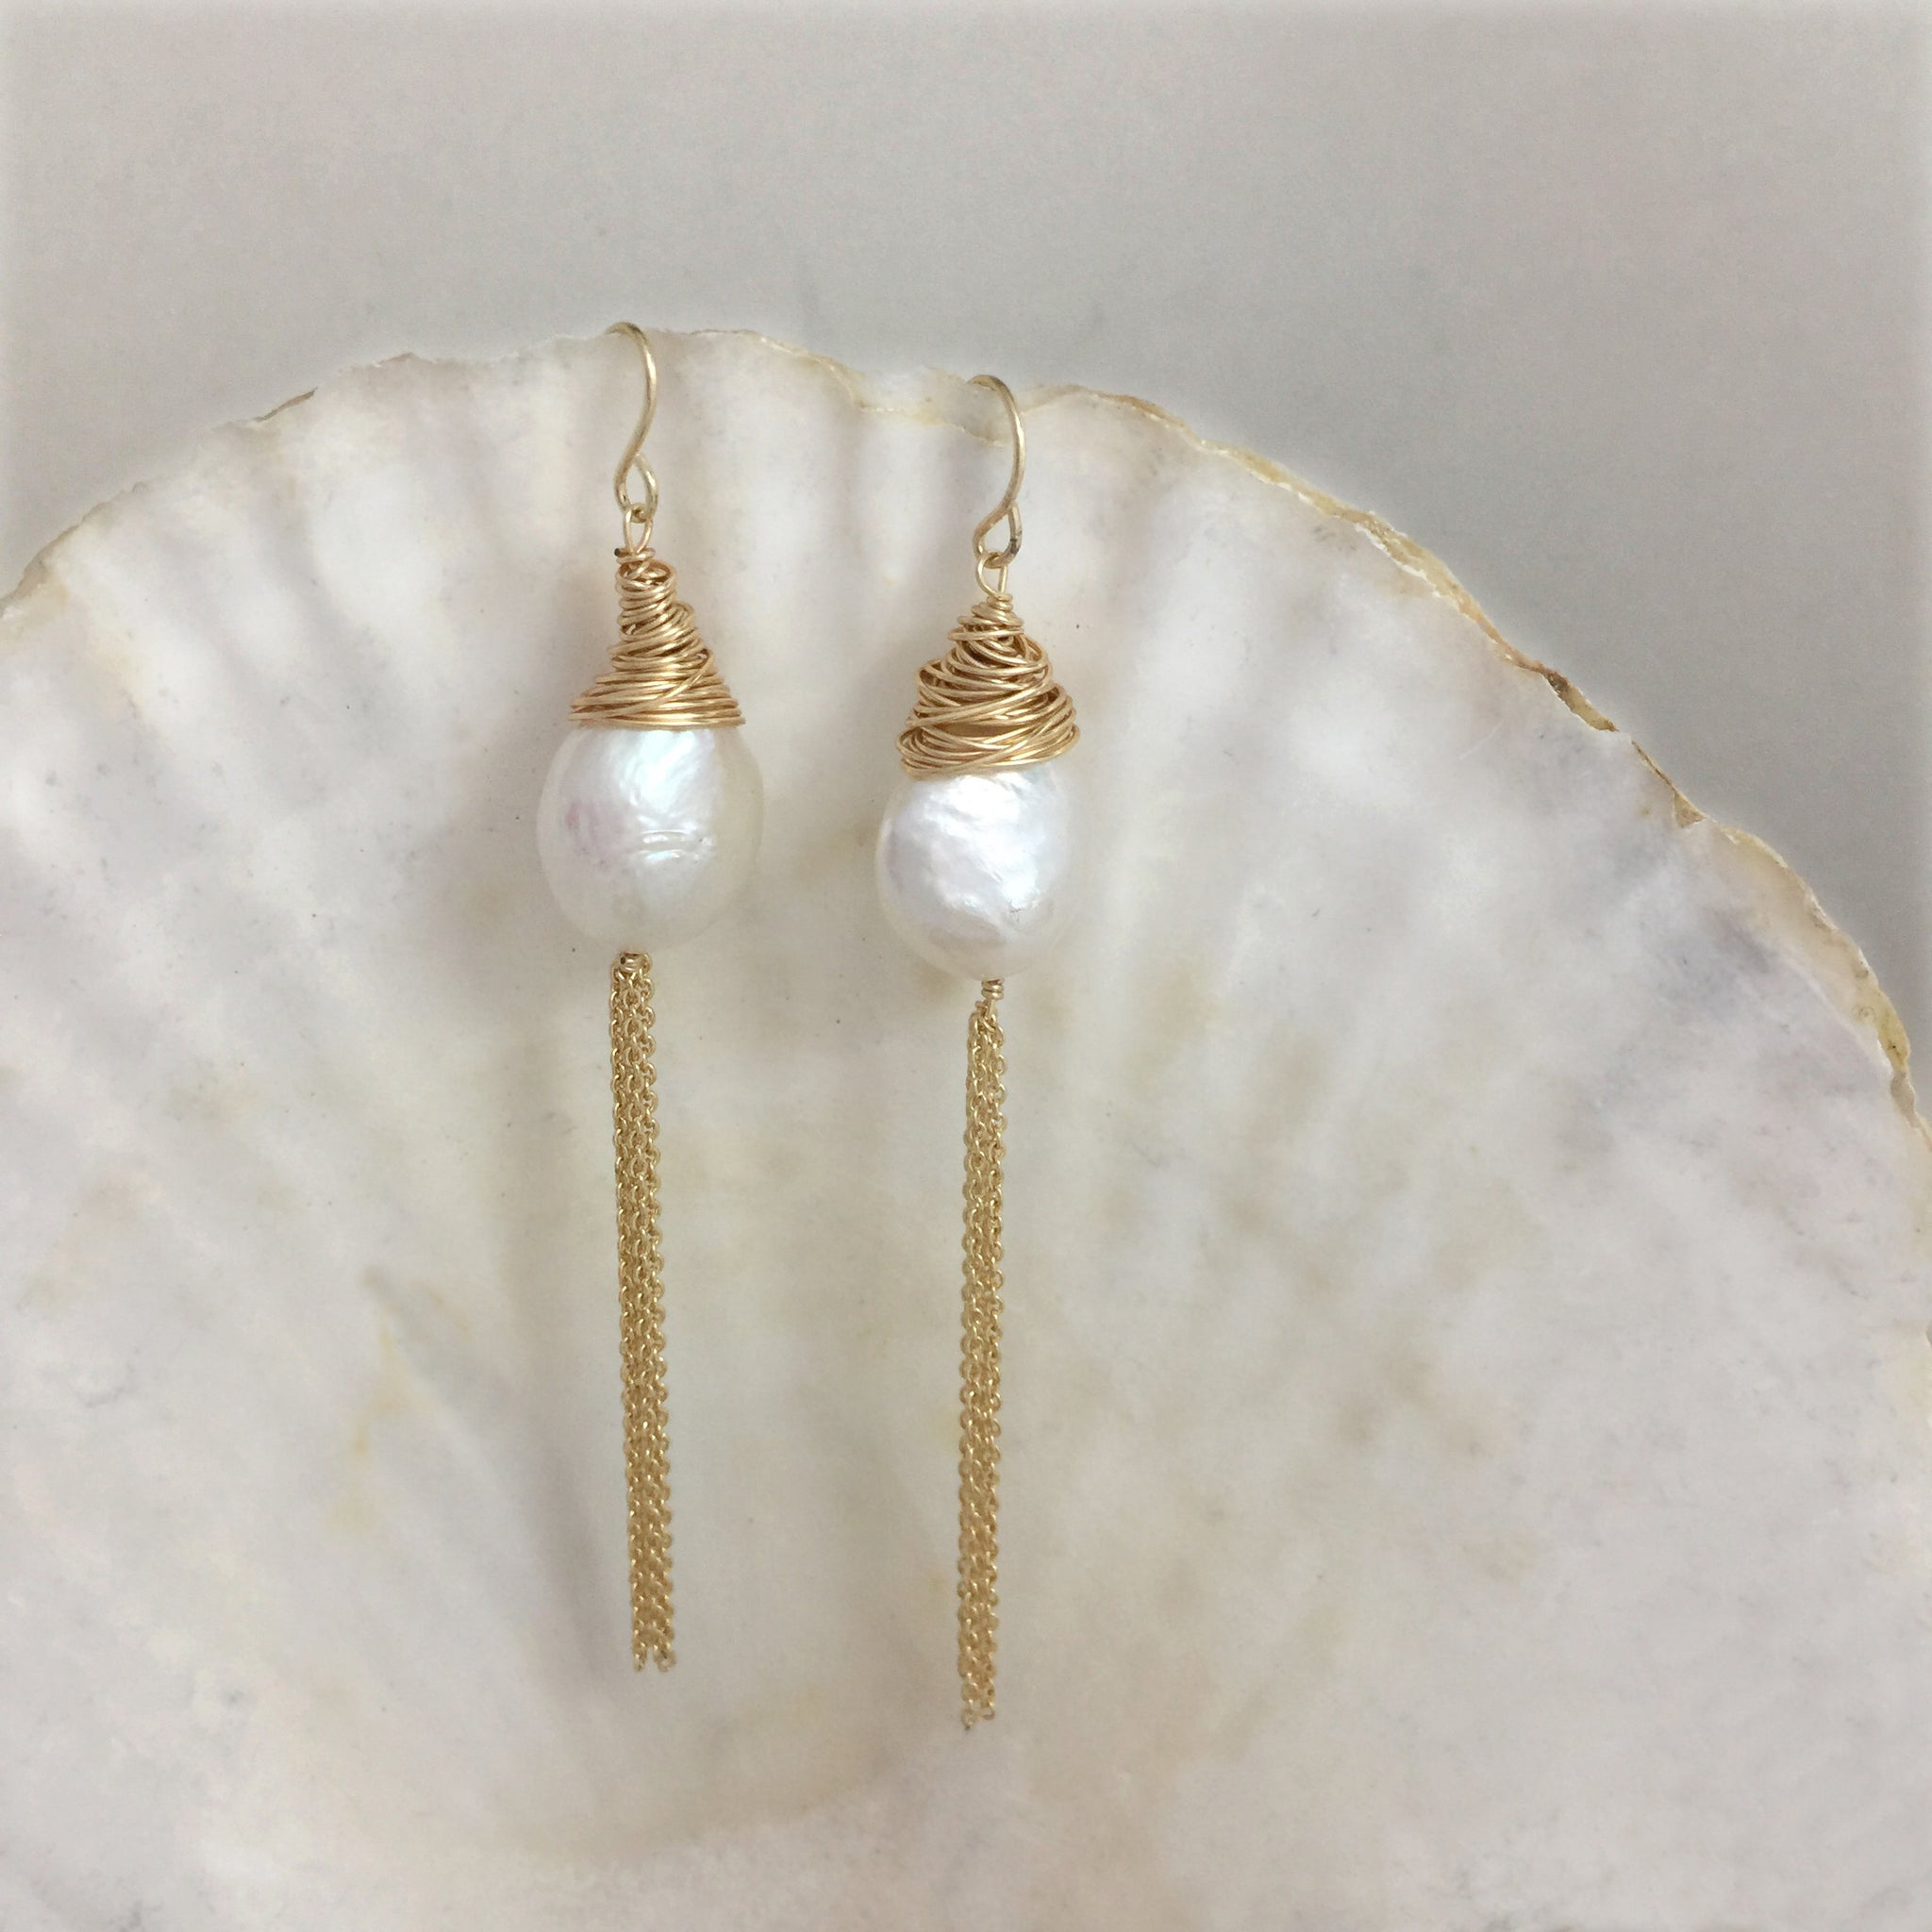 Large Baroque Pearl Dangle Earrings 14k, Pearl Drop Earrings, Wedding Earrings